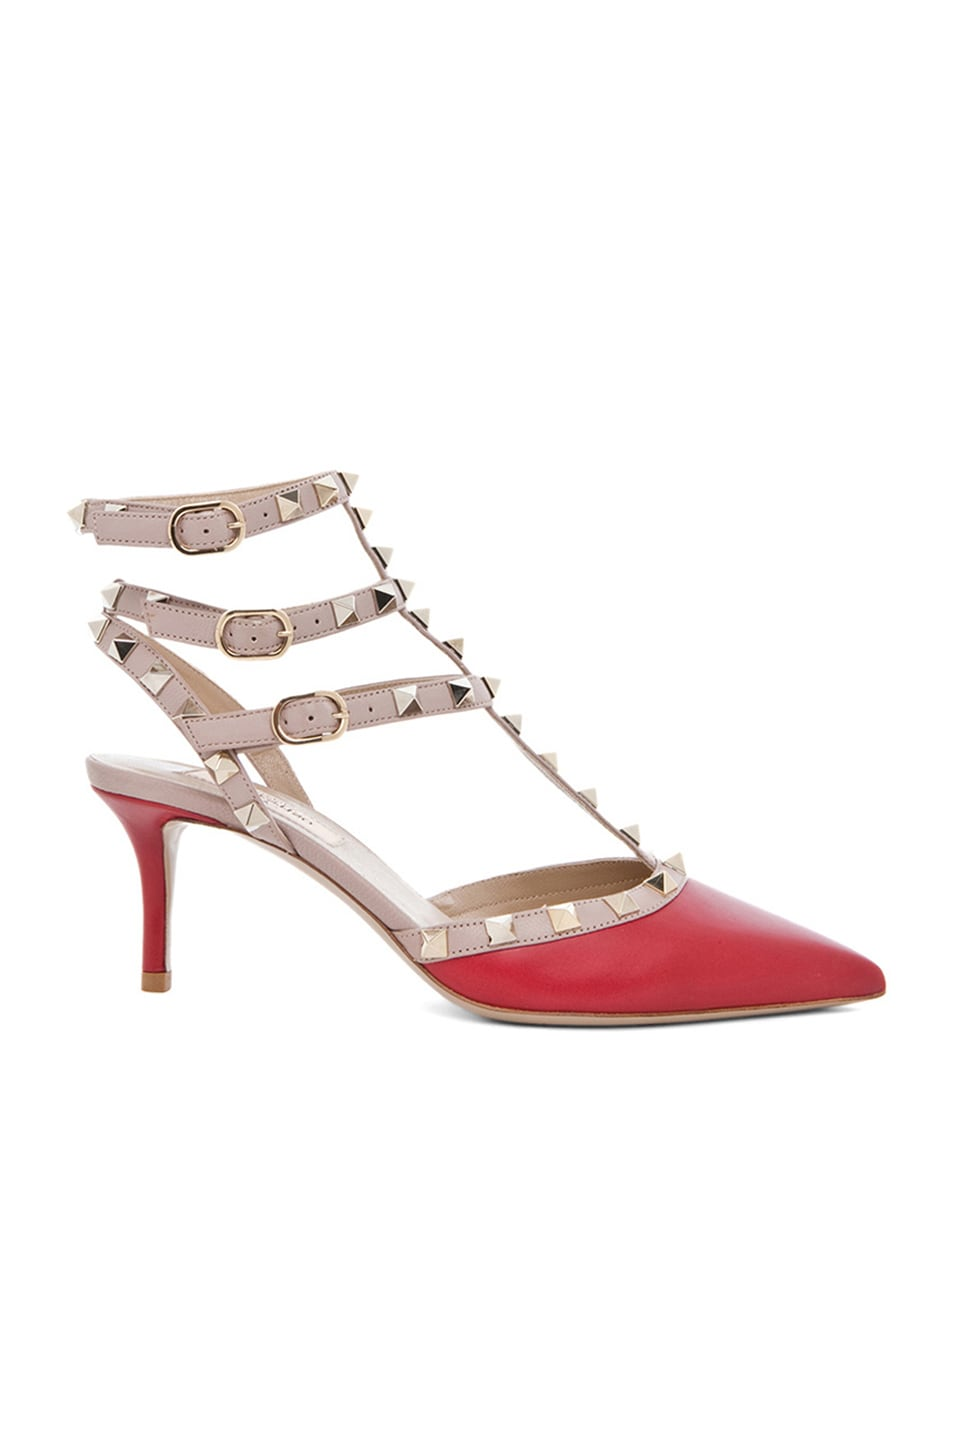 Image 1 of Valentino Rockstud Leather Slingbacks T.65 in Red